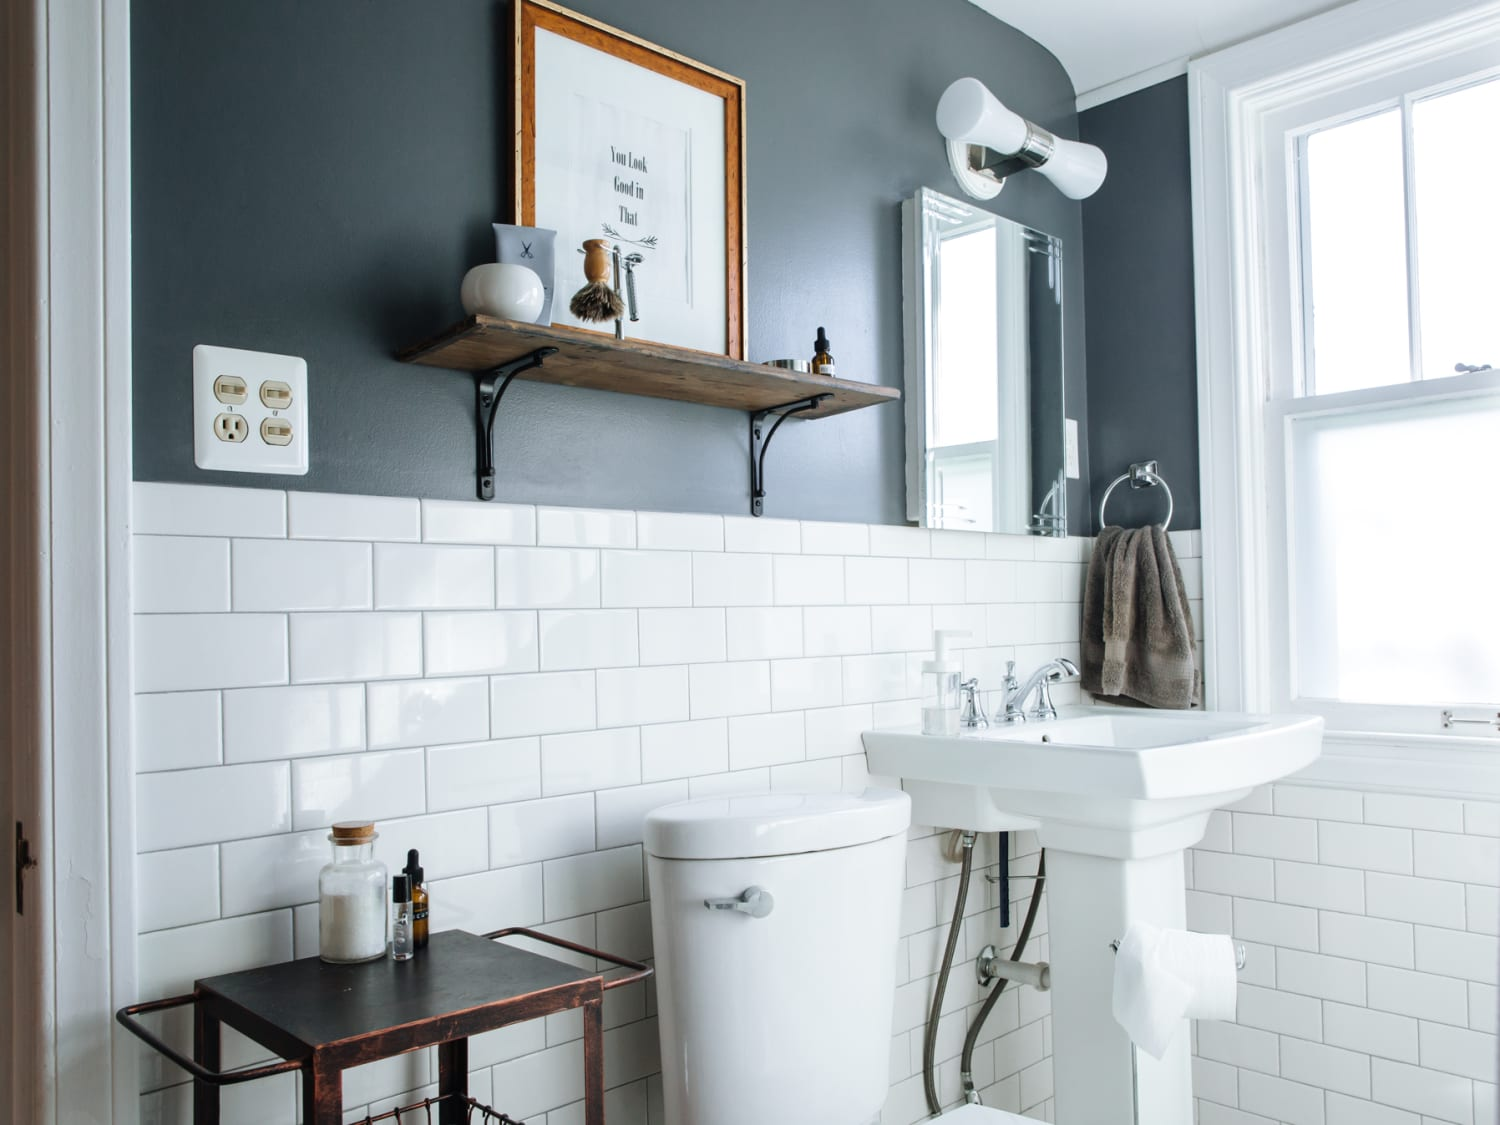 Words In Tiles Is The New Design Trend Taking Over Apartment Therapy